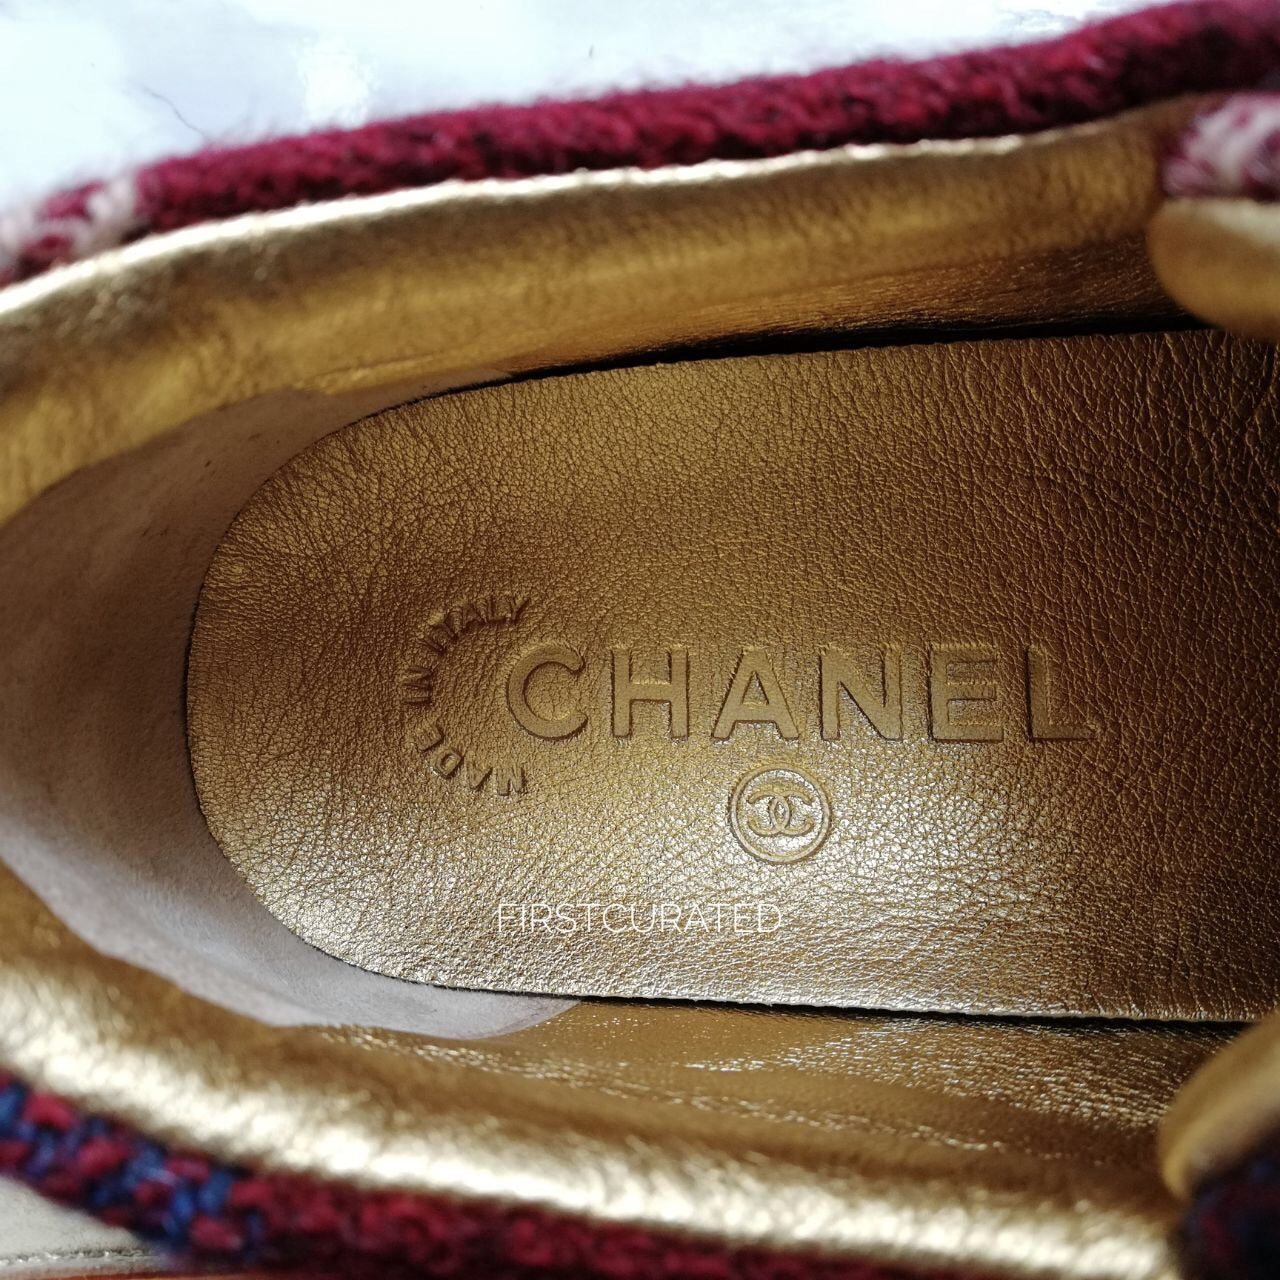 Chanel Tweed and Metallic Sneakers, Size 37